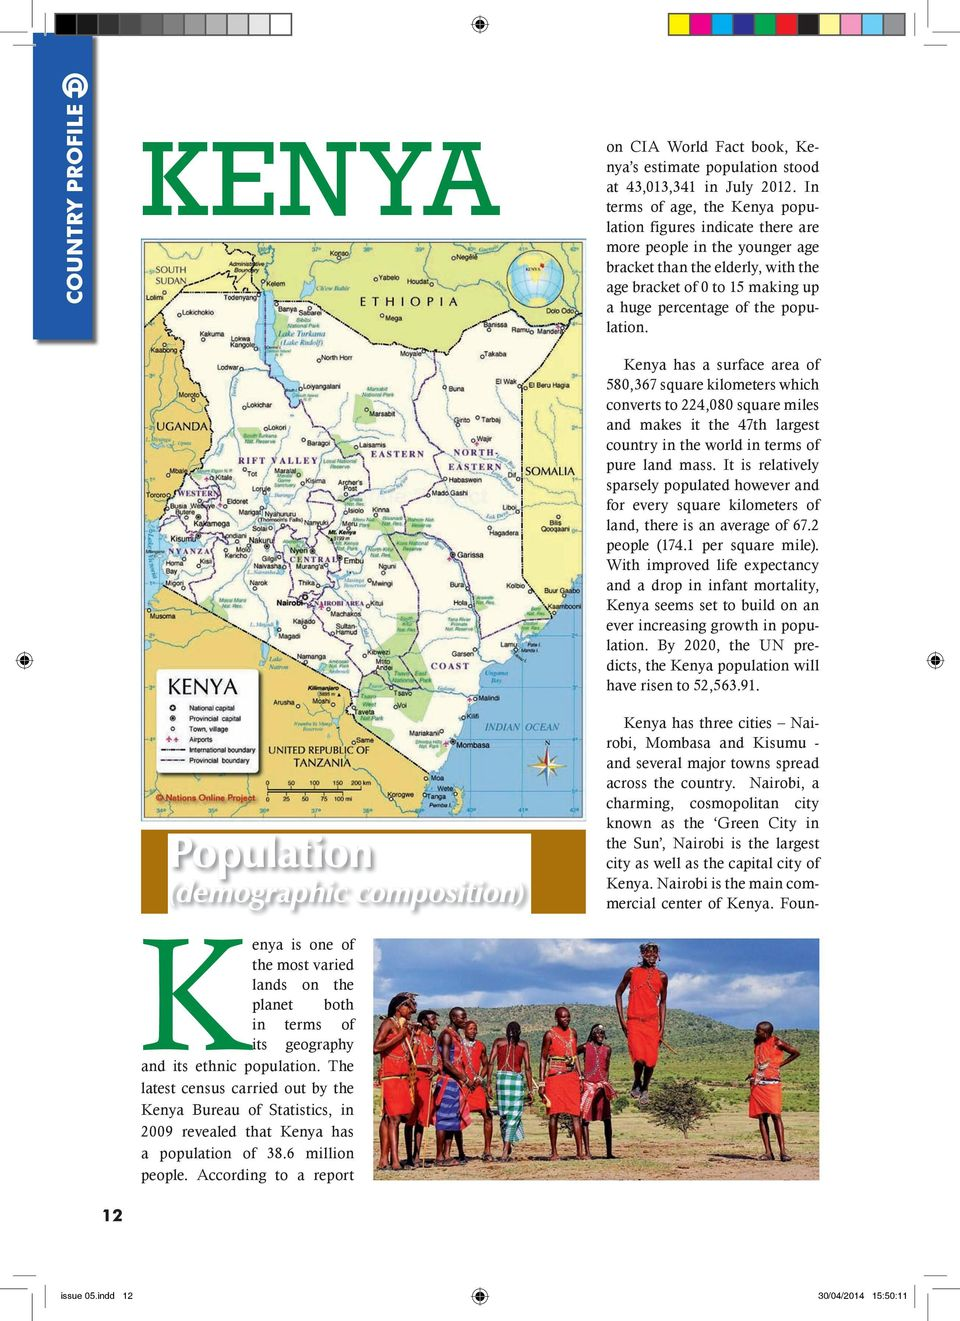 Population (demographic composition) Kenya has a surface area of 580,367 square kilometers which converts to 224,080 square miles and makes it the 47th largest country in the world in terms of pure